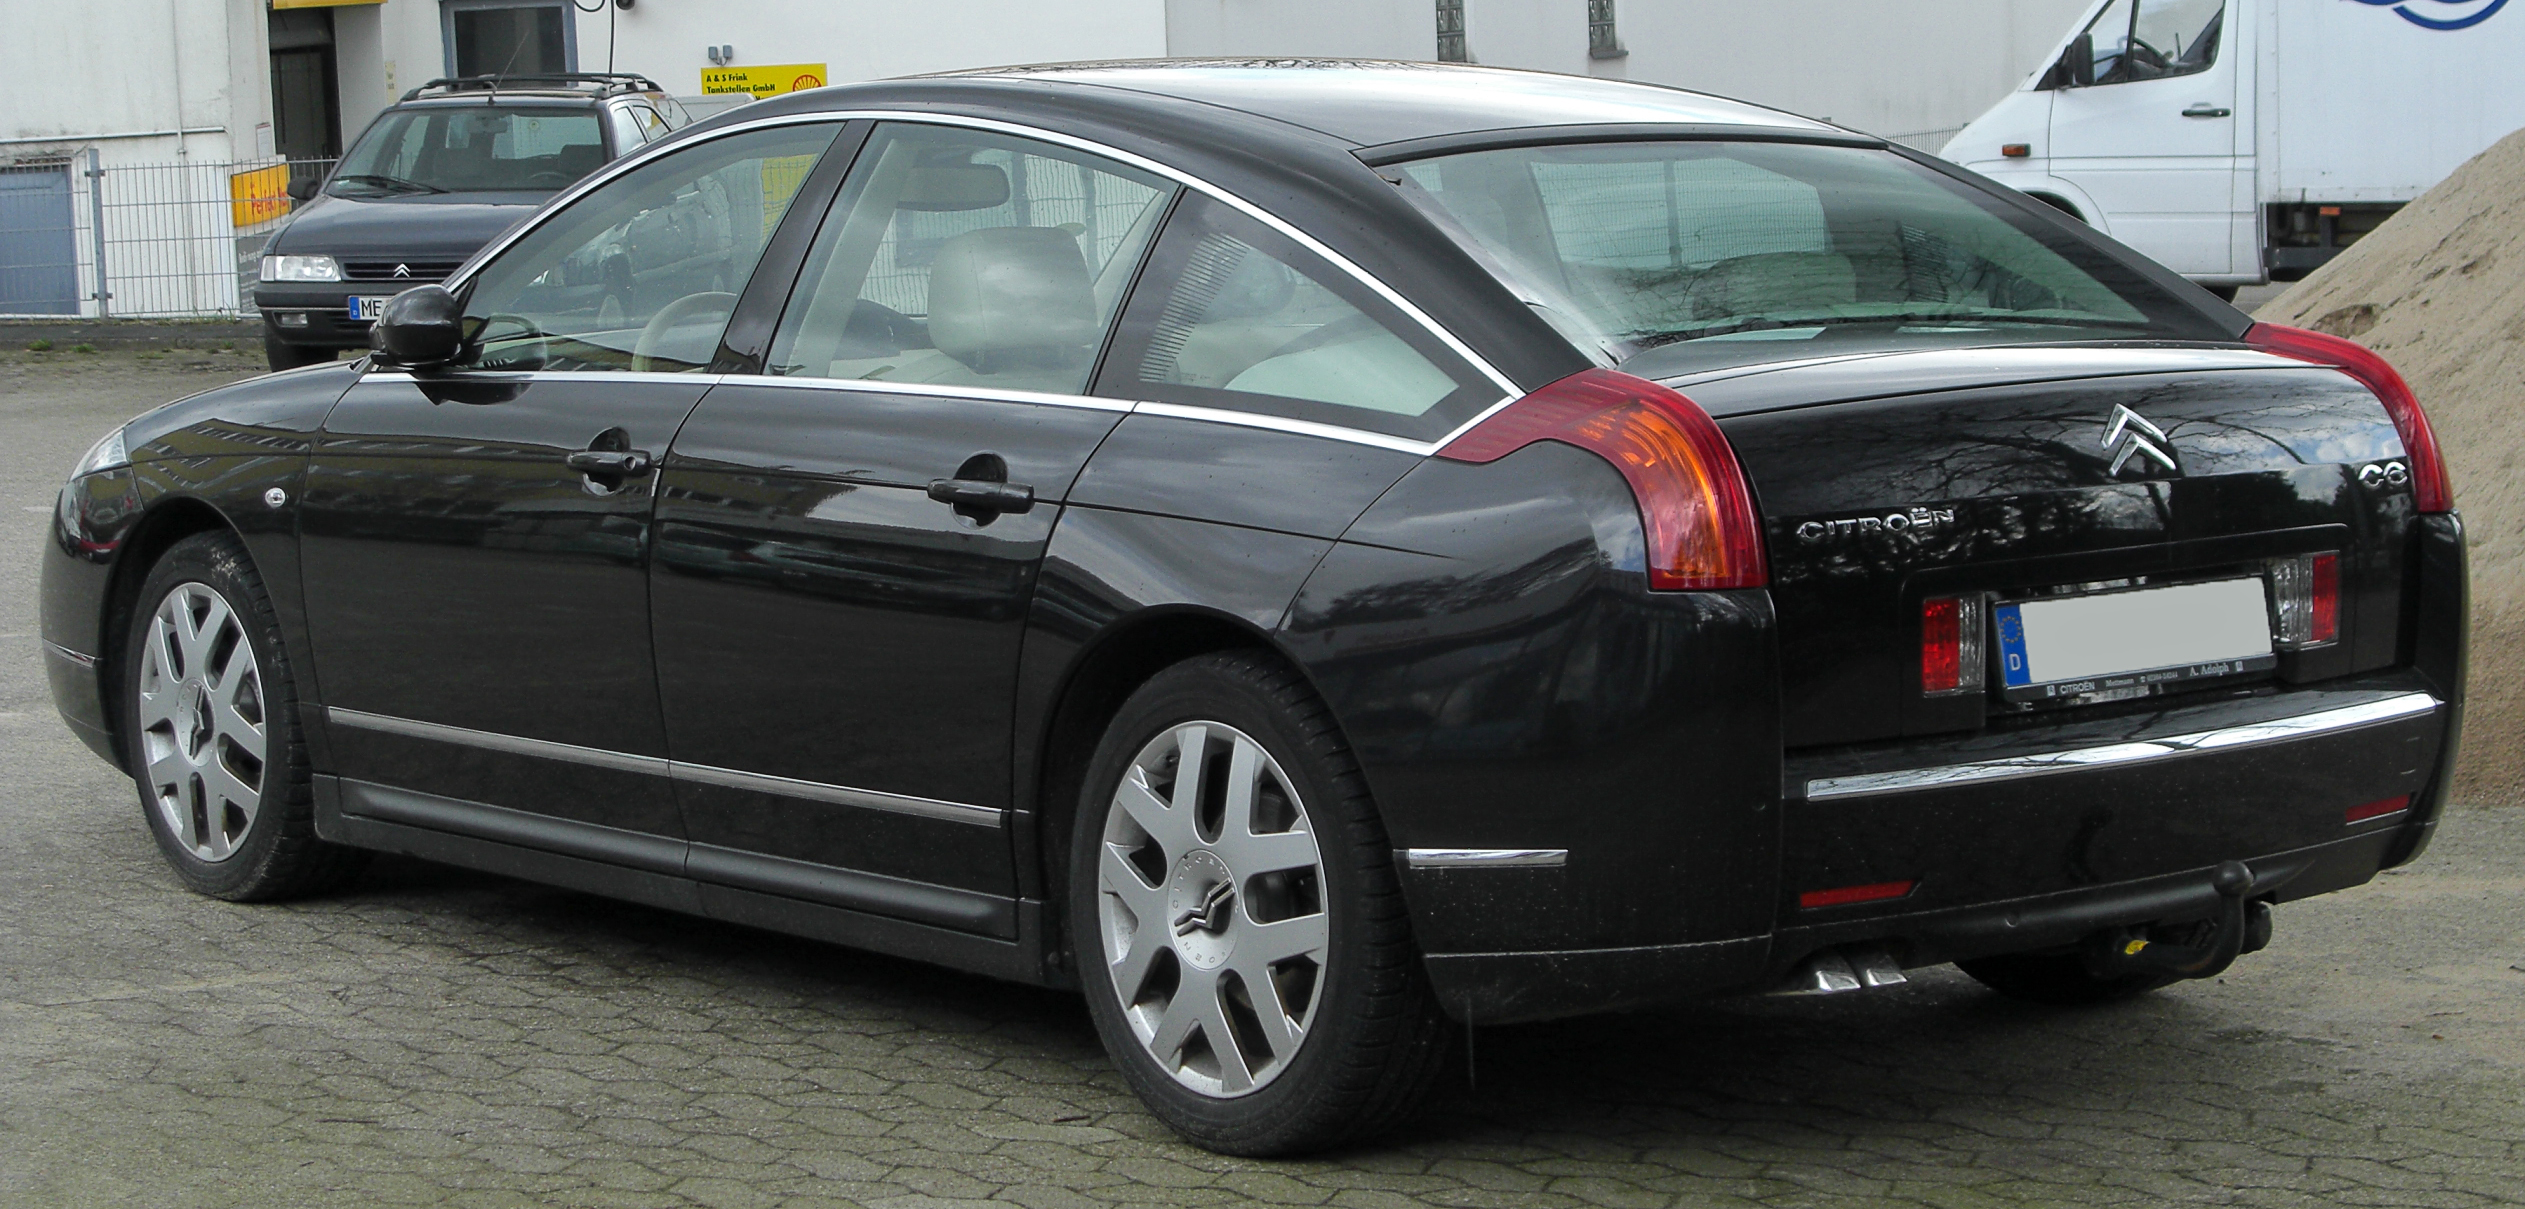 citroen c6 seriess #12